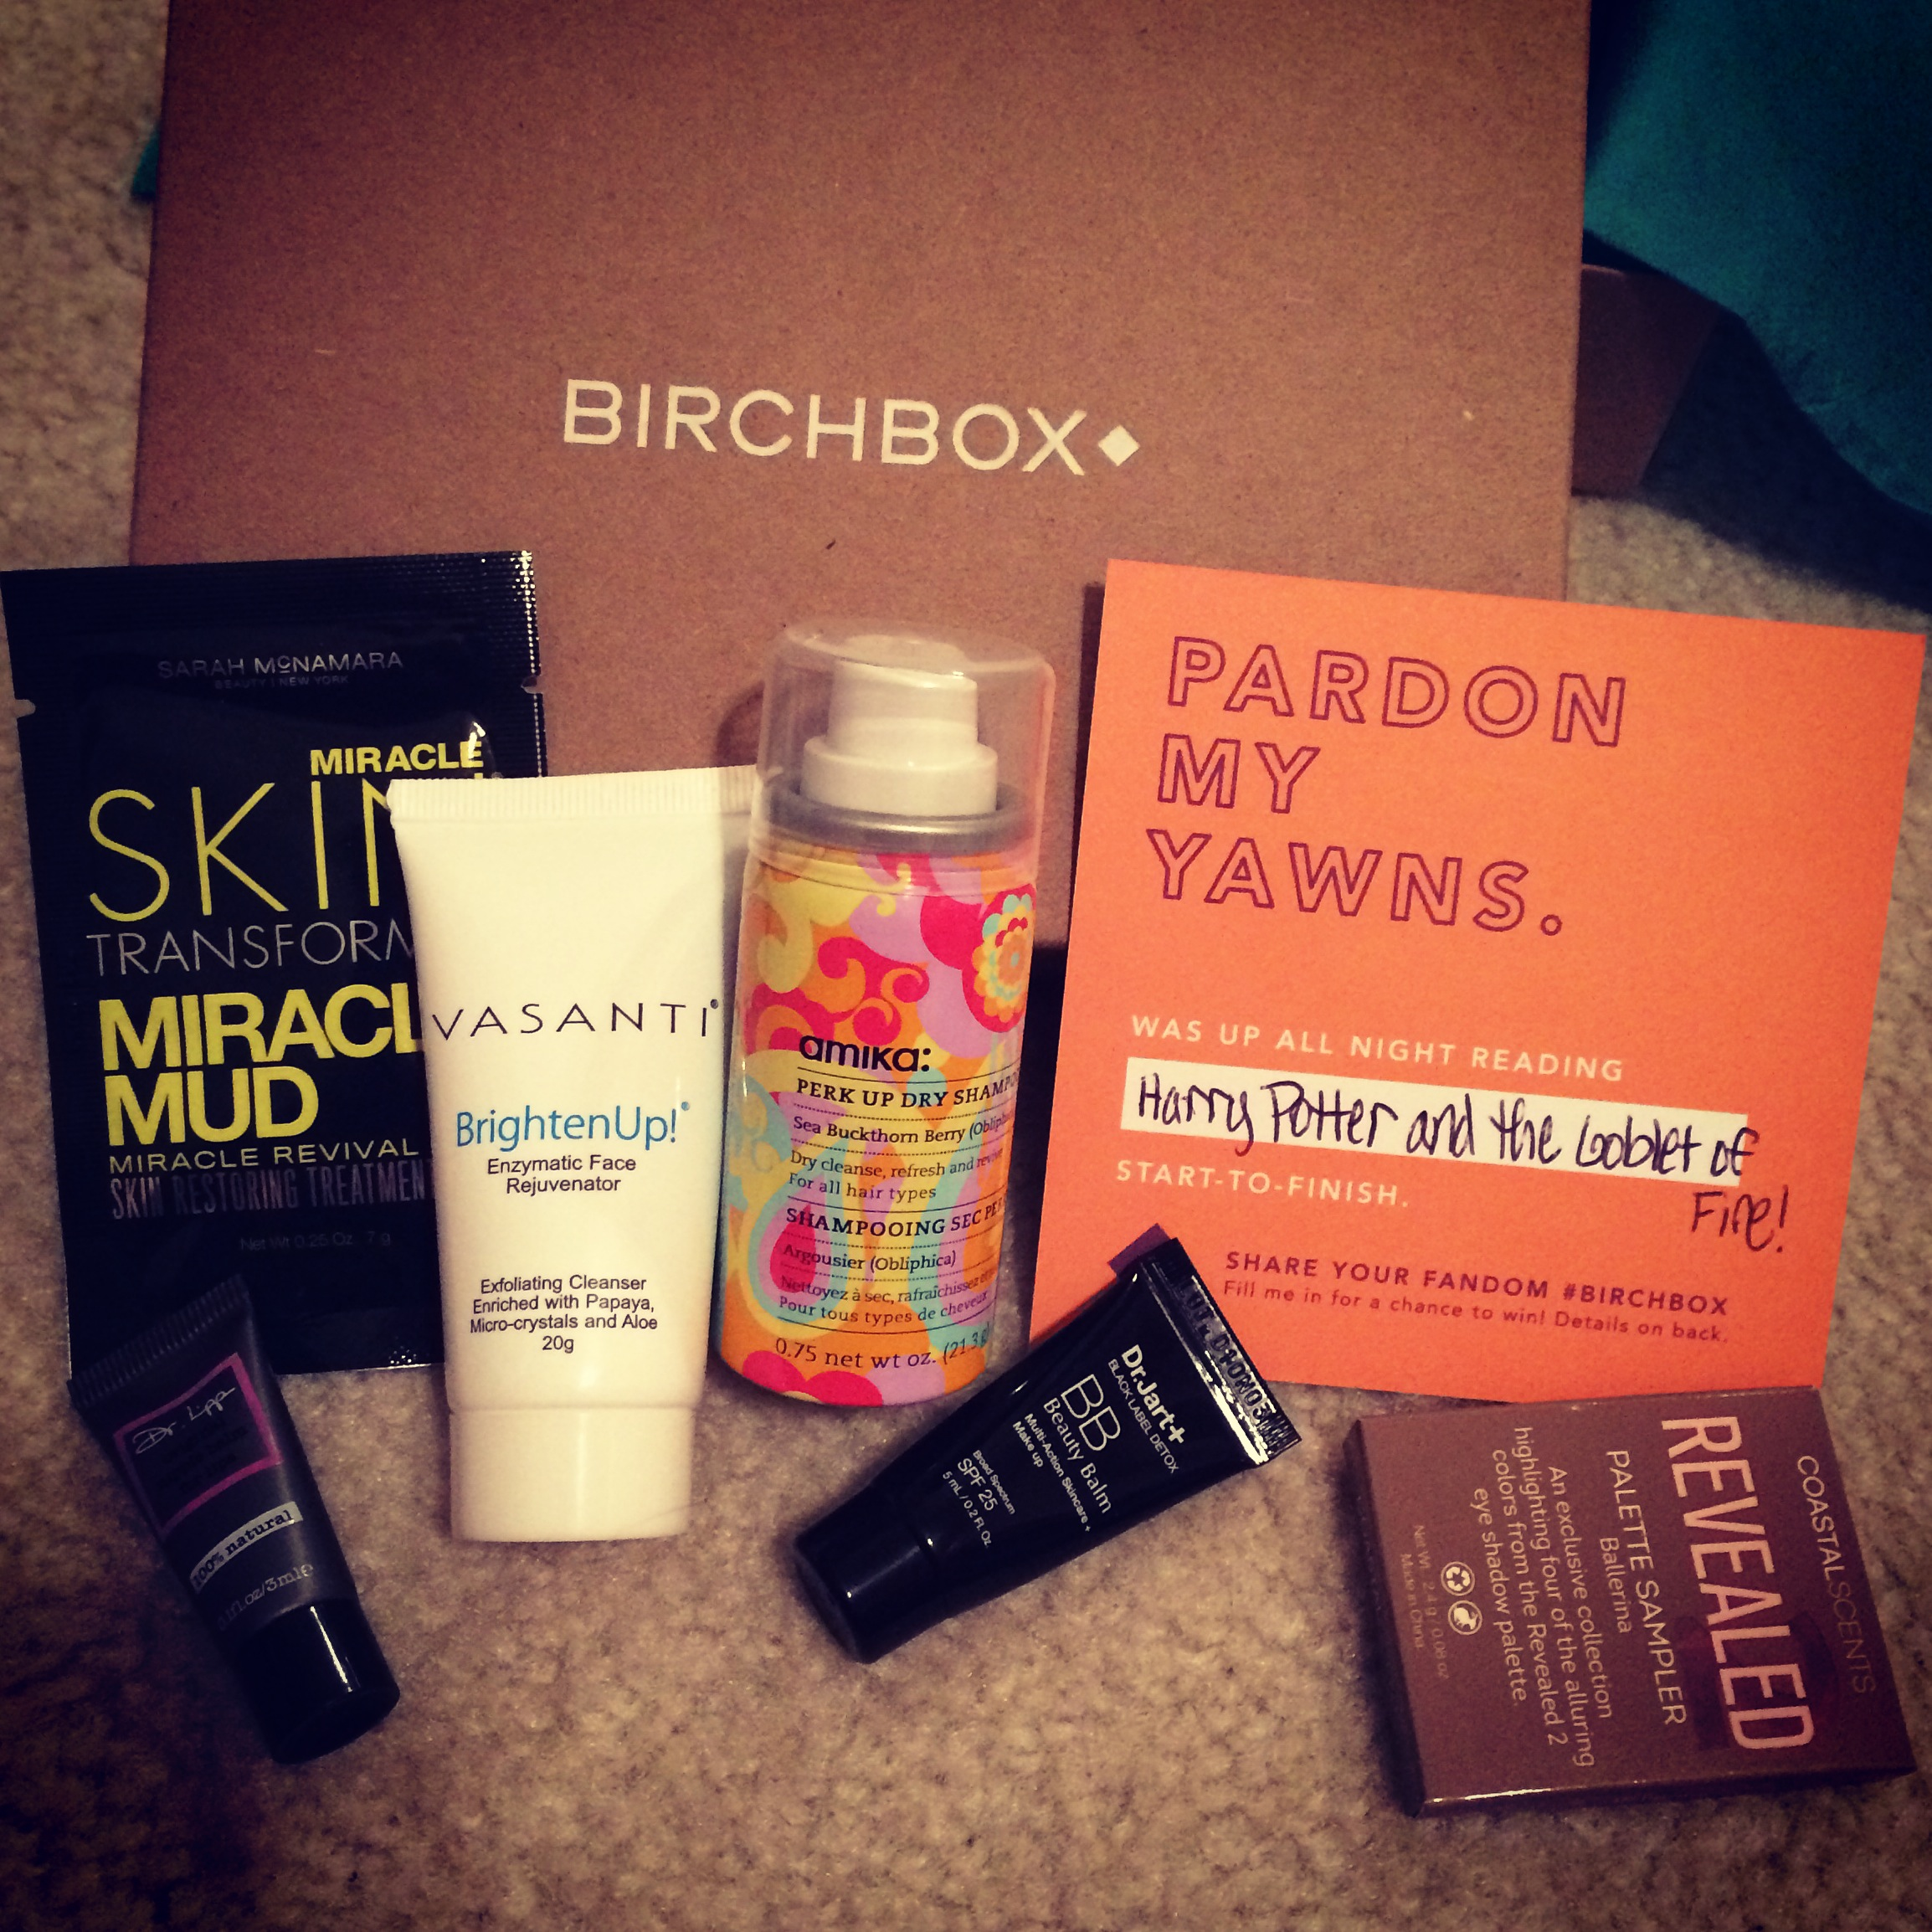 Contents of a Birchbox